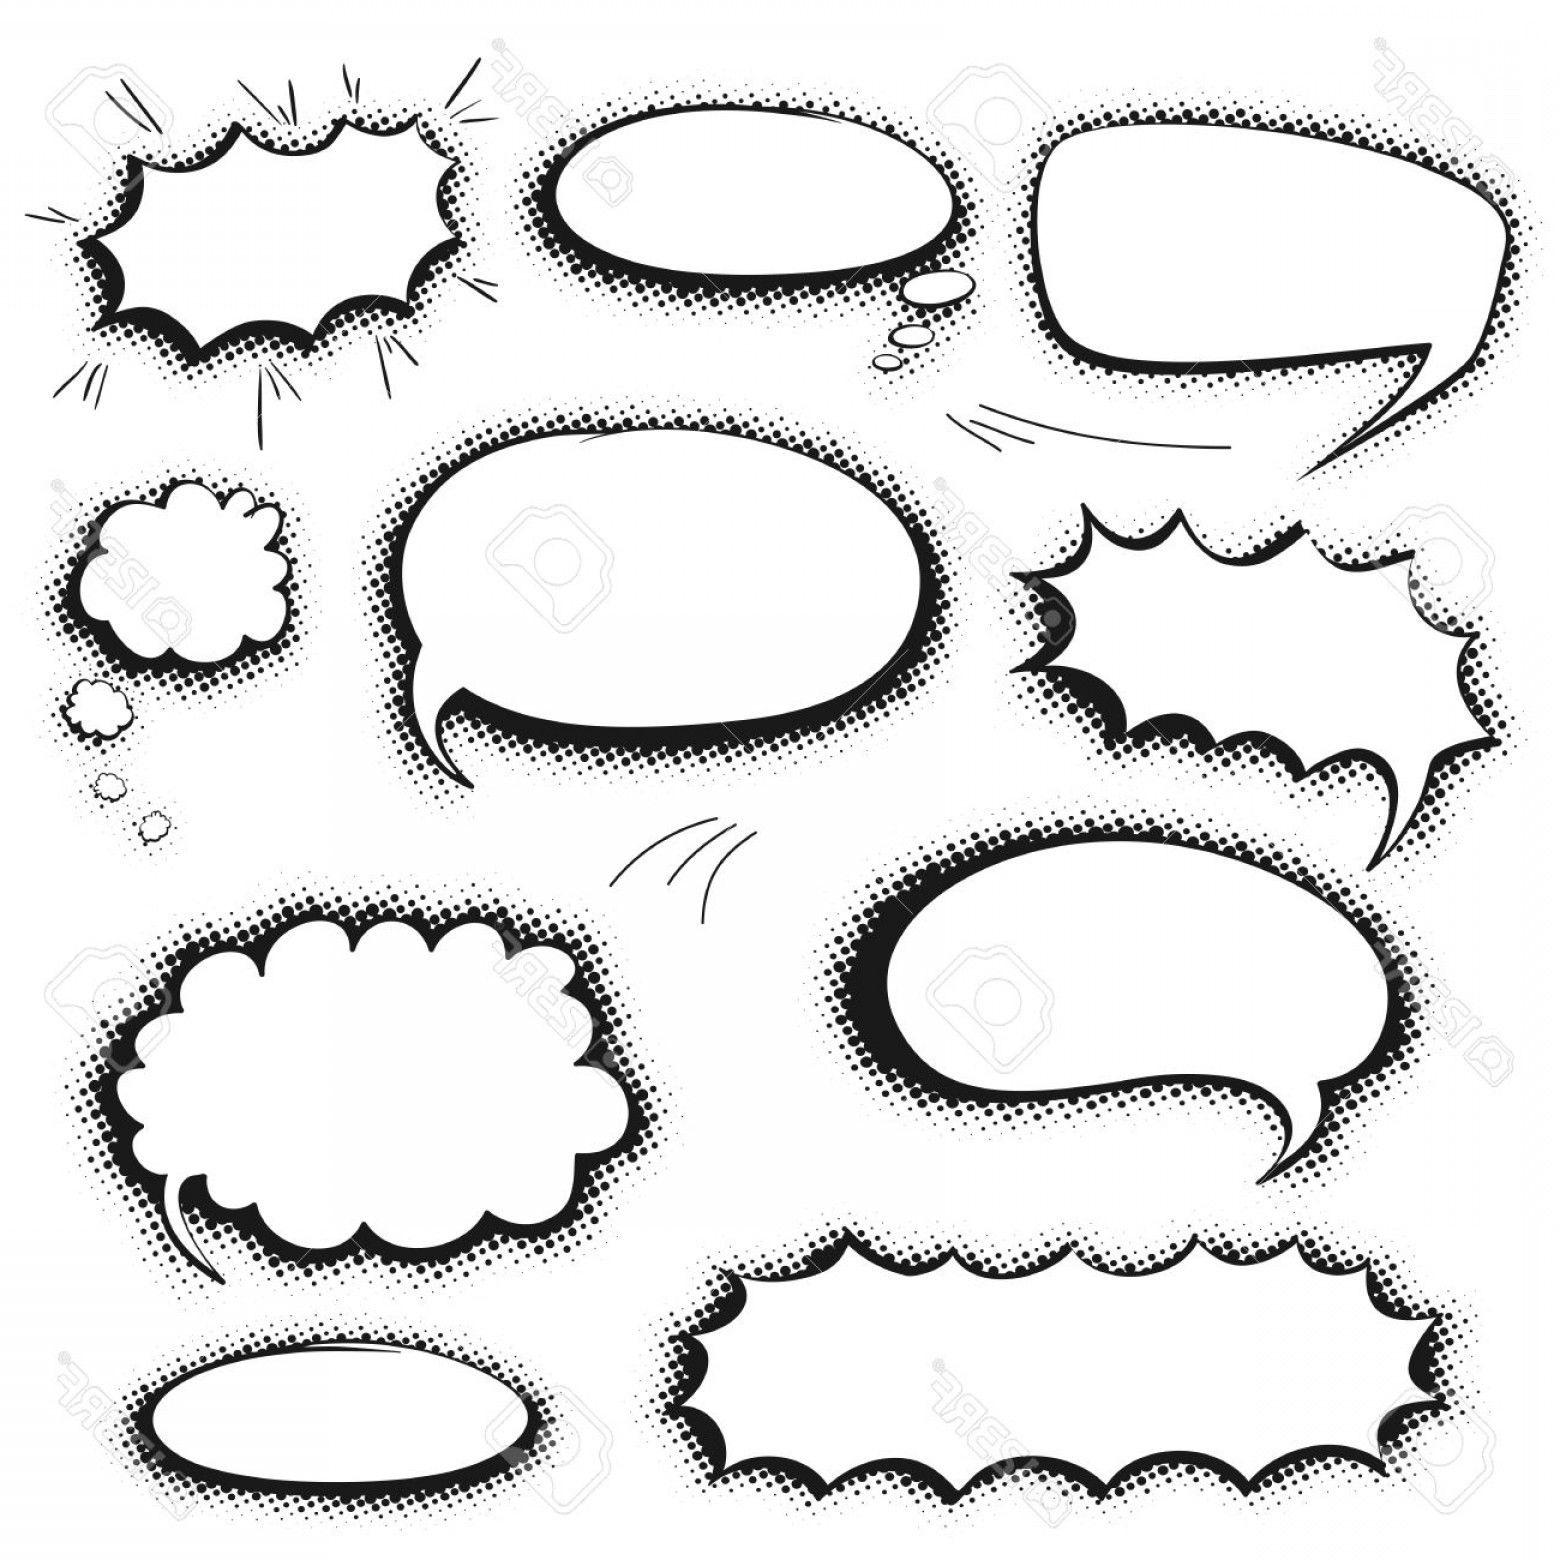 Vector Art Black And White Bubbles: Photostock Vector Set Of Empty Graphic Black And White Comics Speech Bubbles Vector Templates For Your Text With Shado